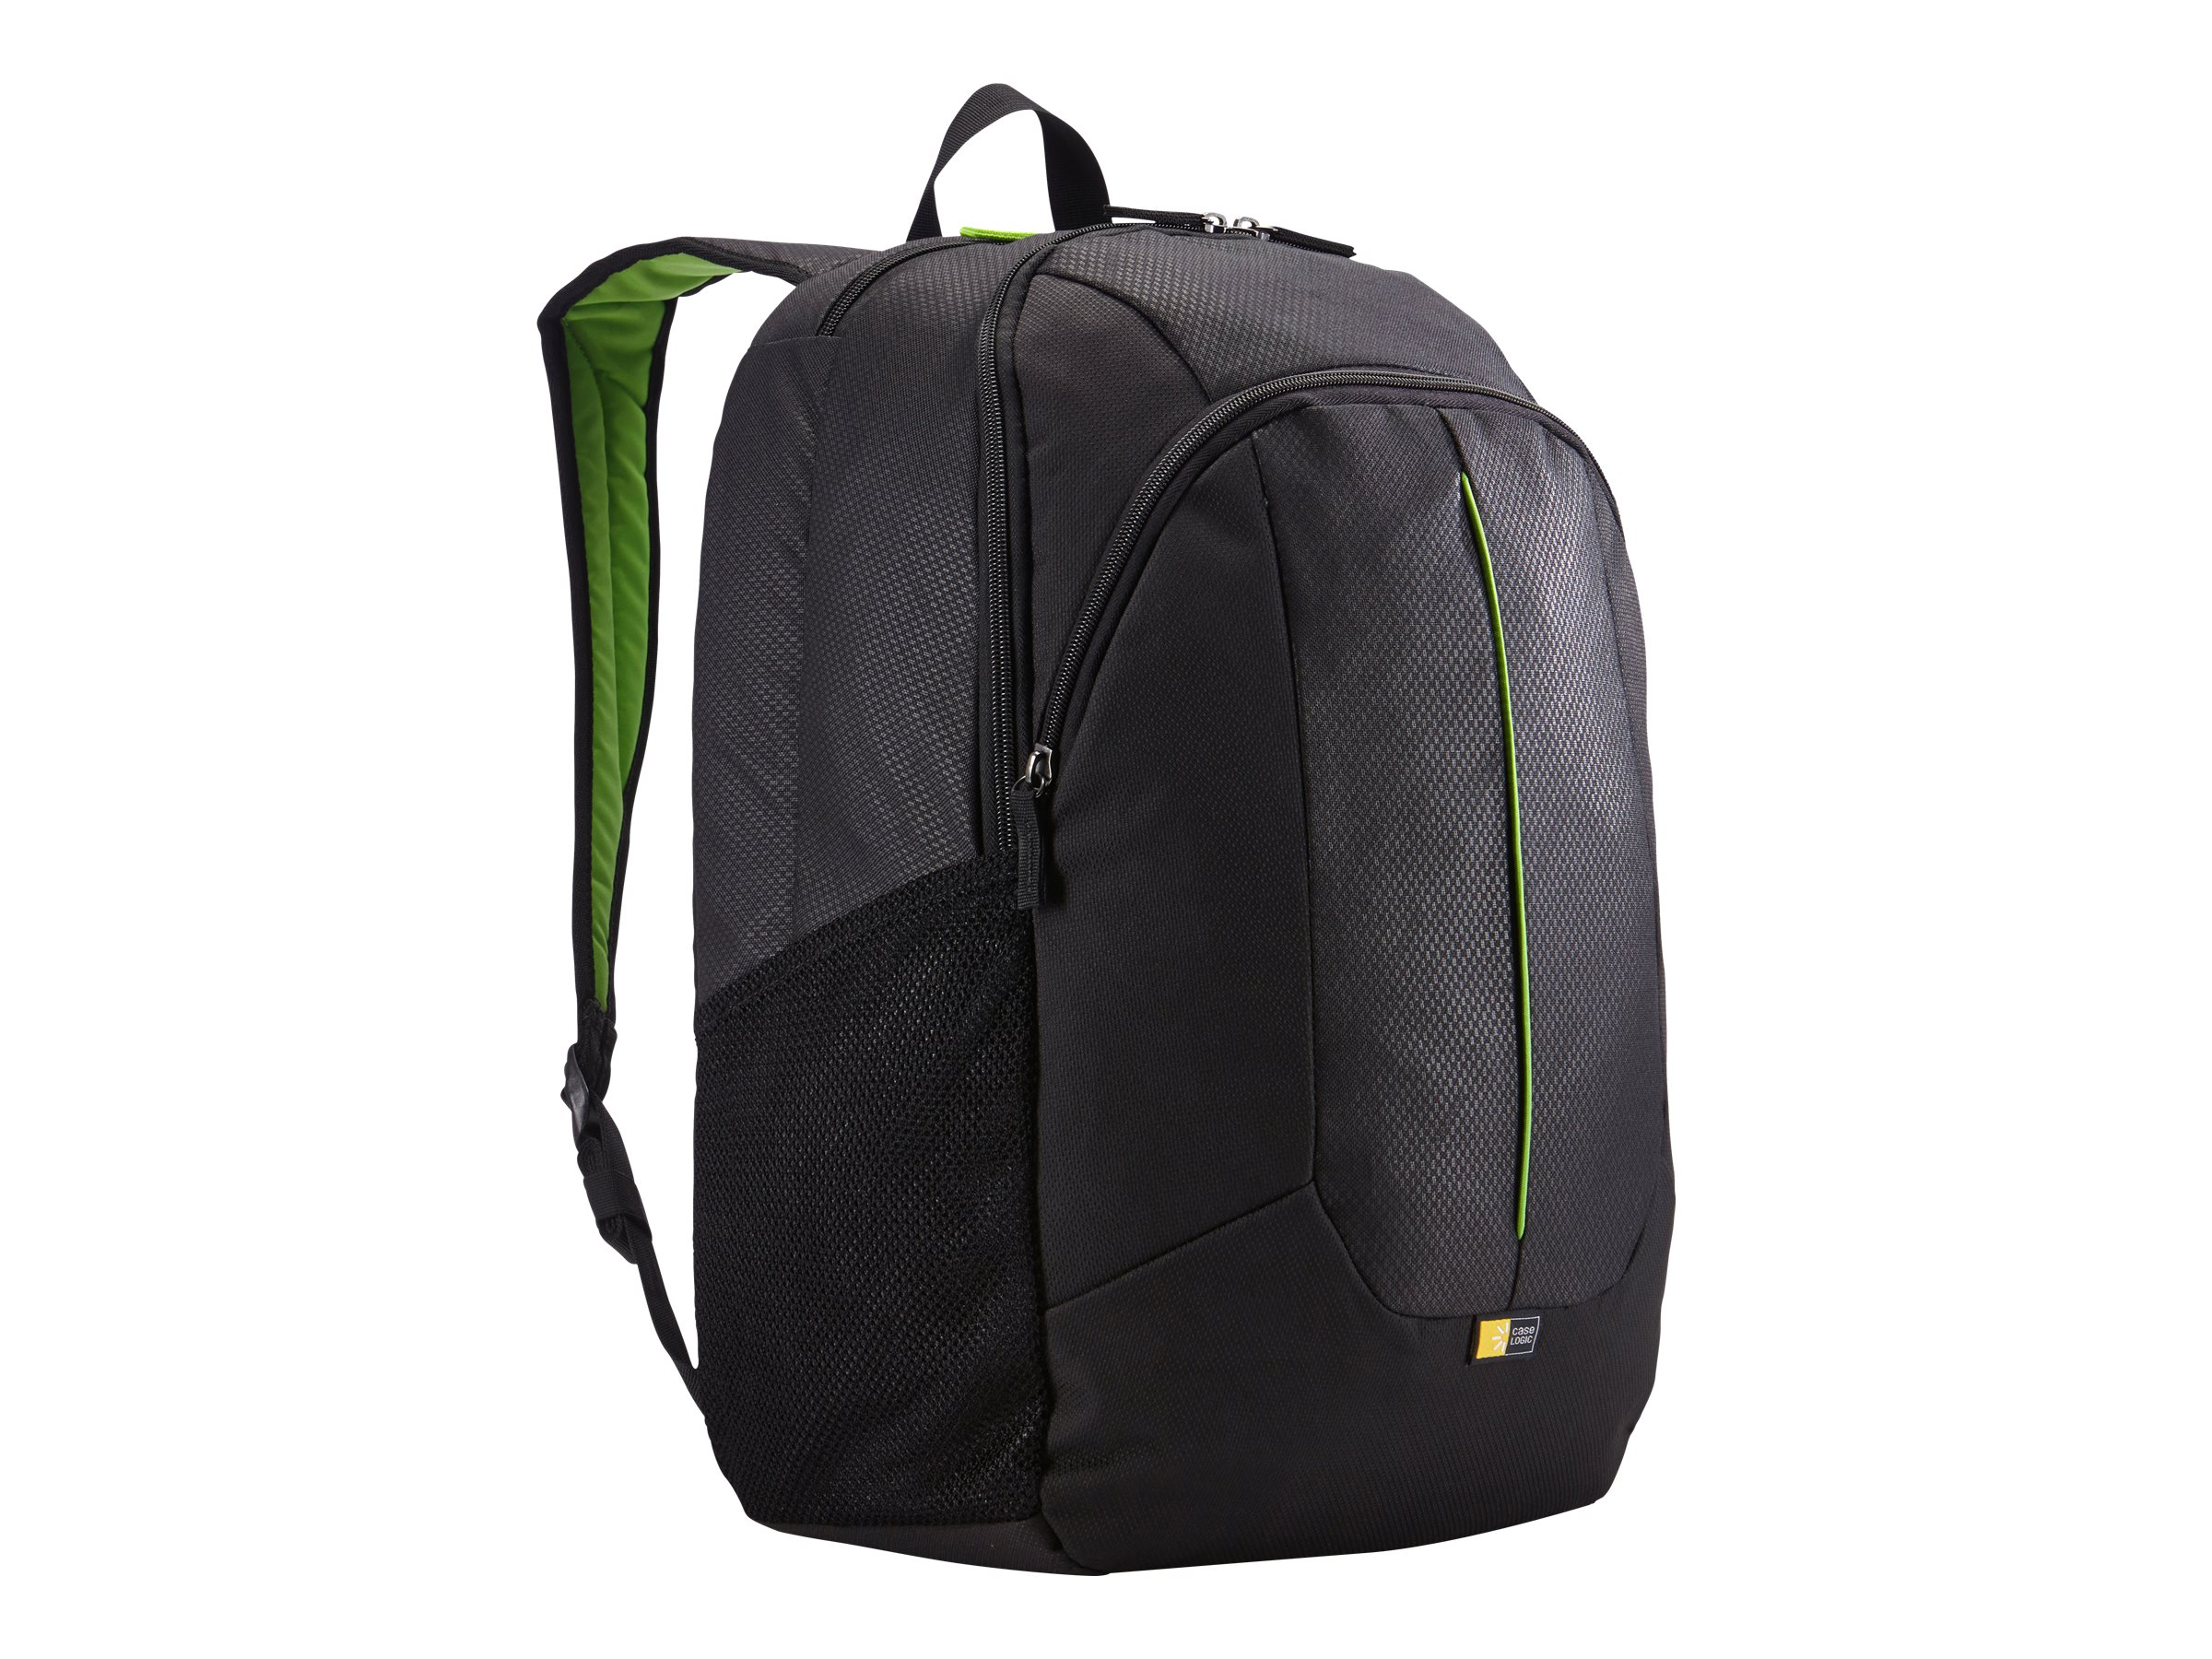 Case Logic Prevailer 17 Laptop Backpack